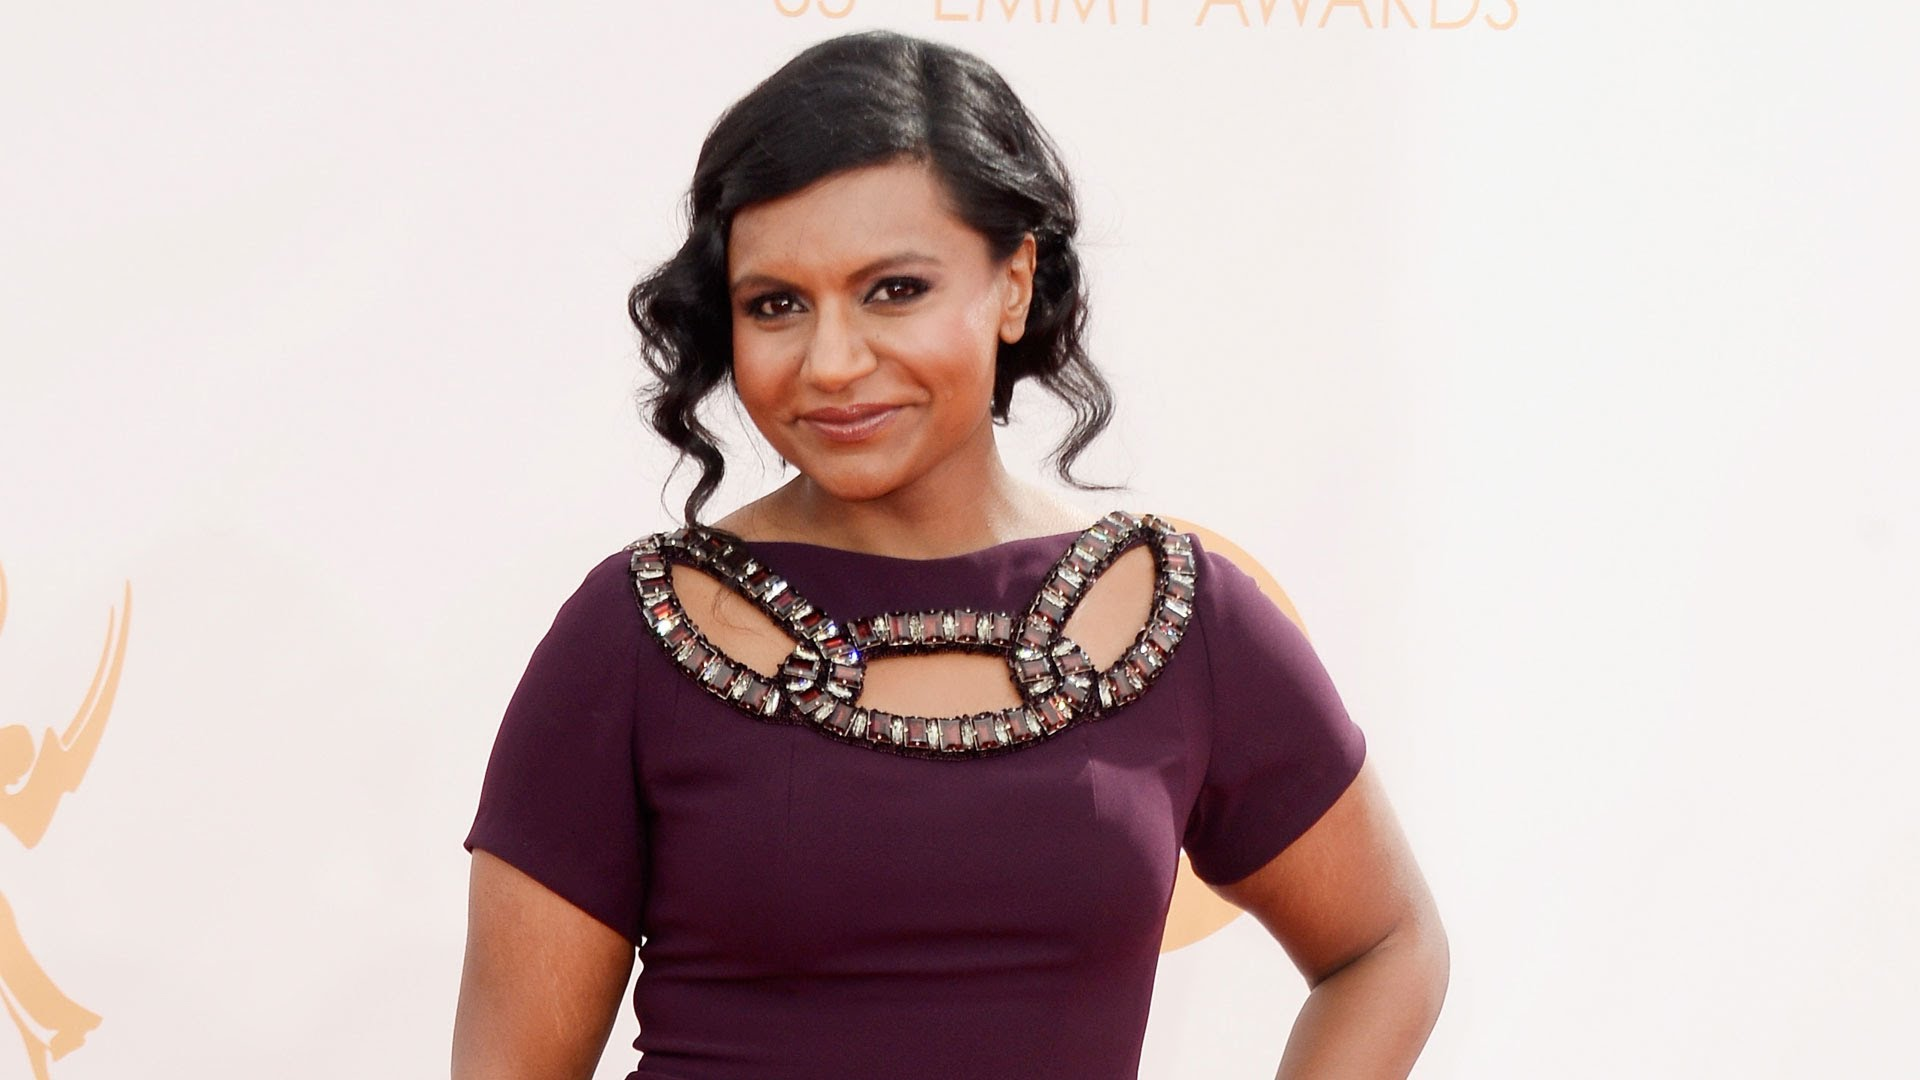 Mindy Kaling Wallpapers Live Mindy Kaling Wallpapers 1920x1080